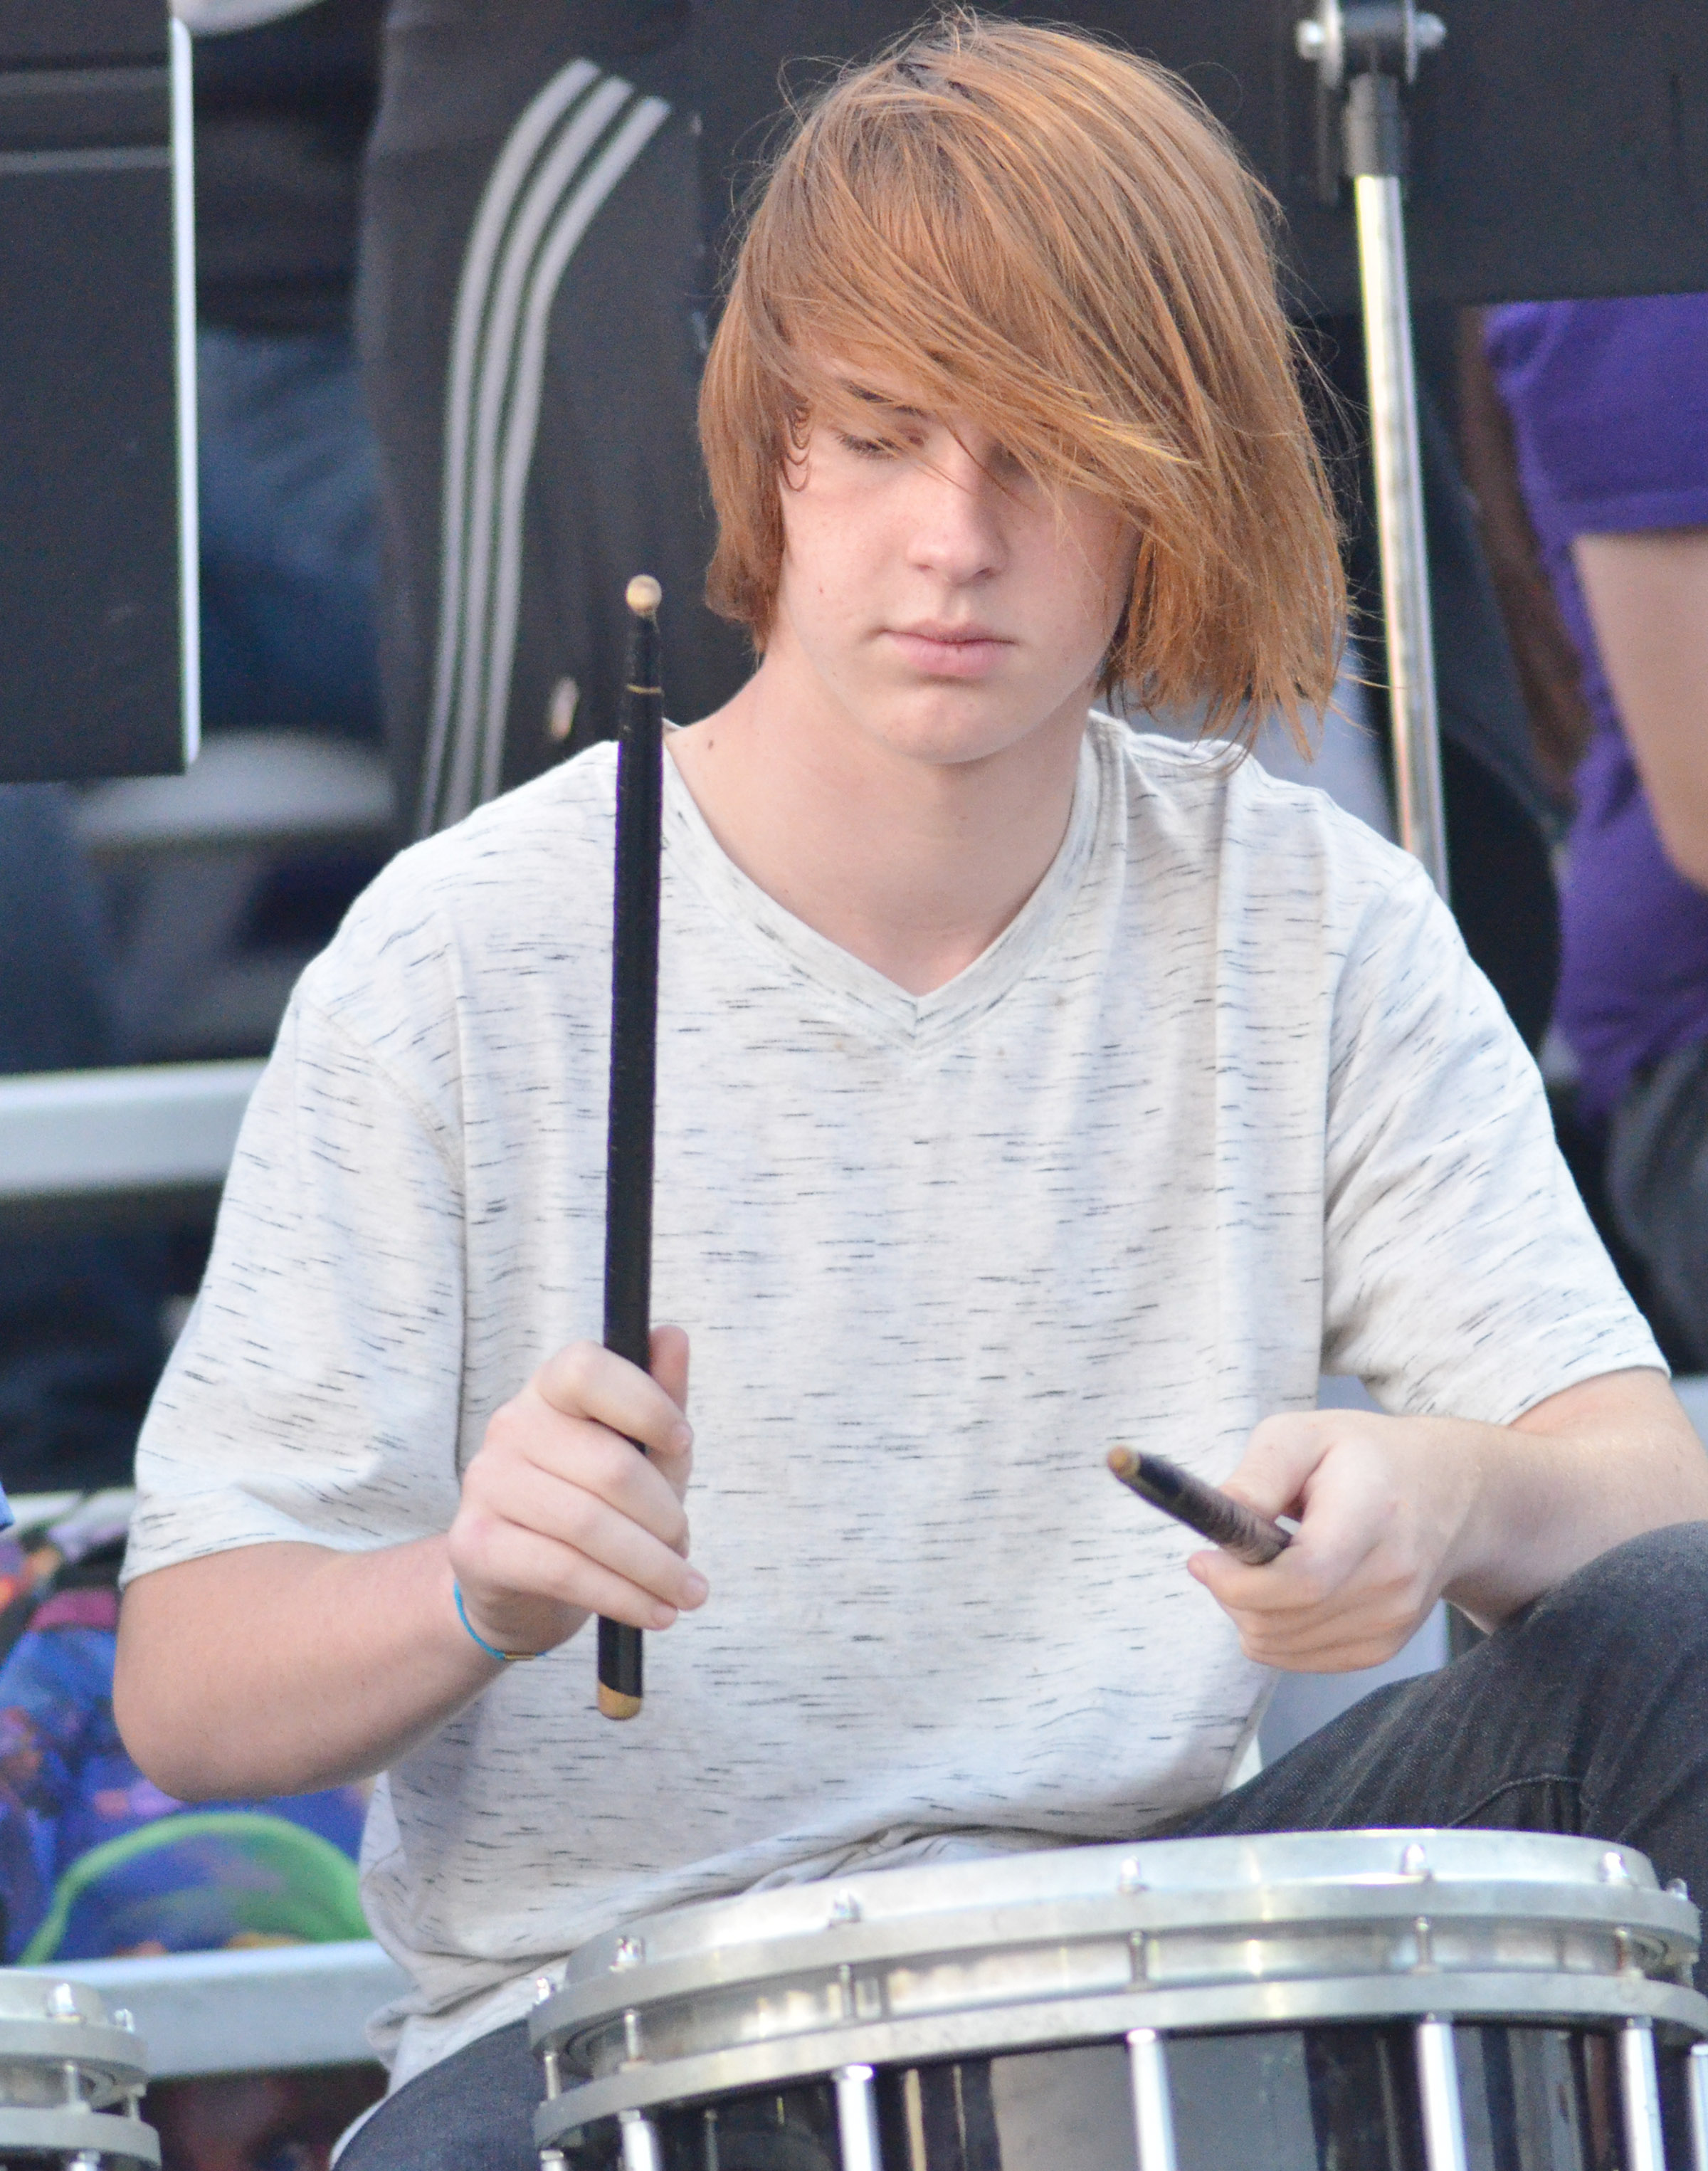 CHS junior Jason Agee plays drums with the pep band.